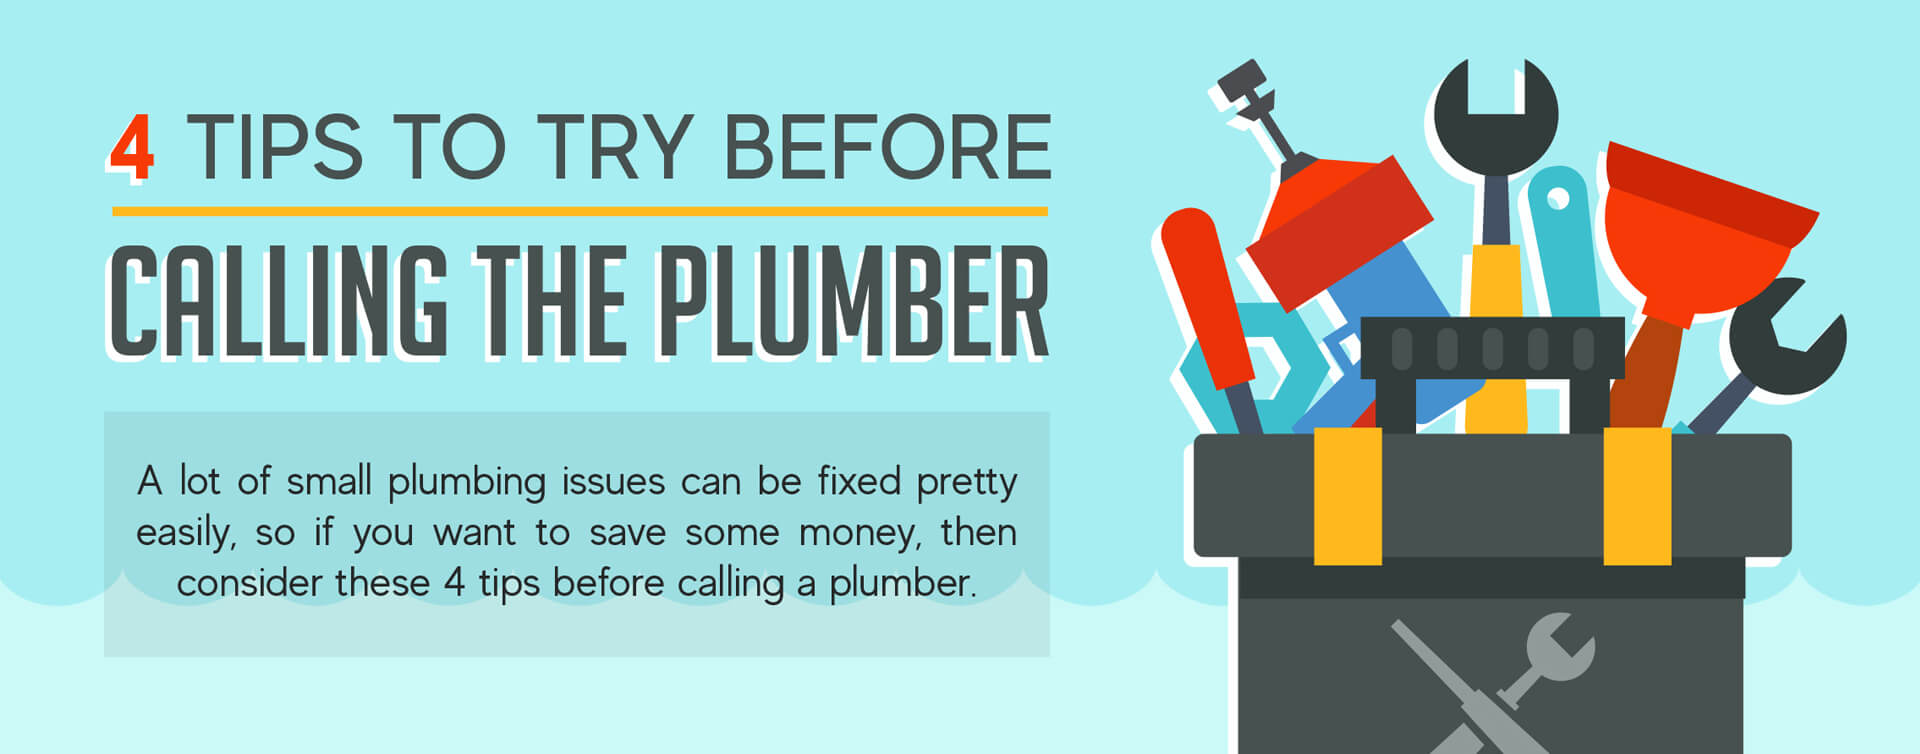 4 tips to try before calling the plumber banner